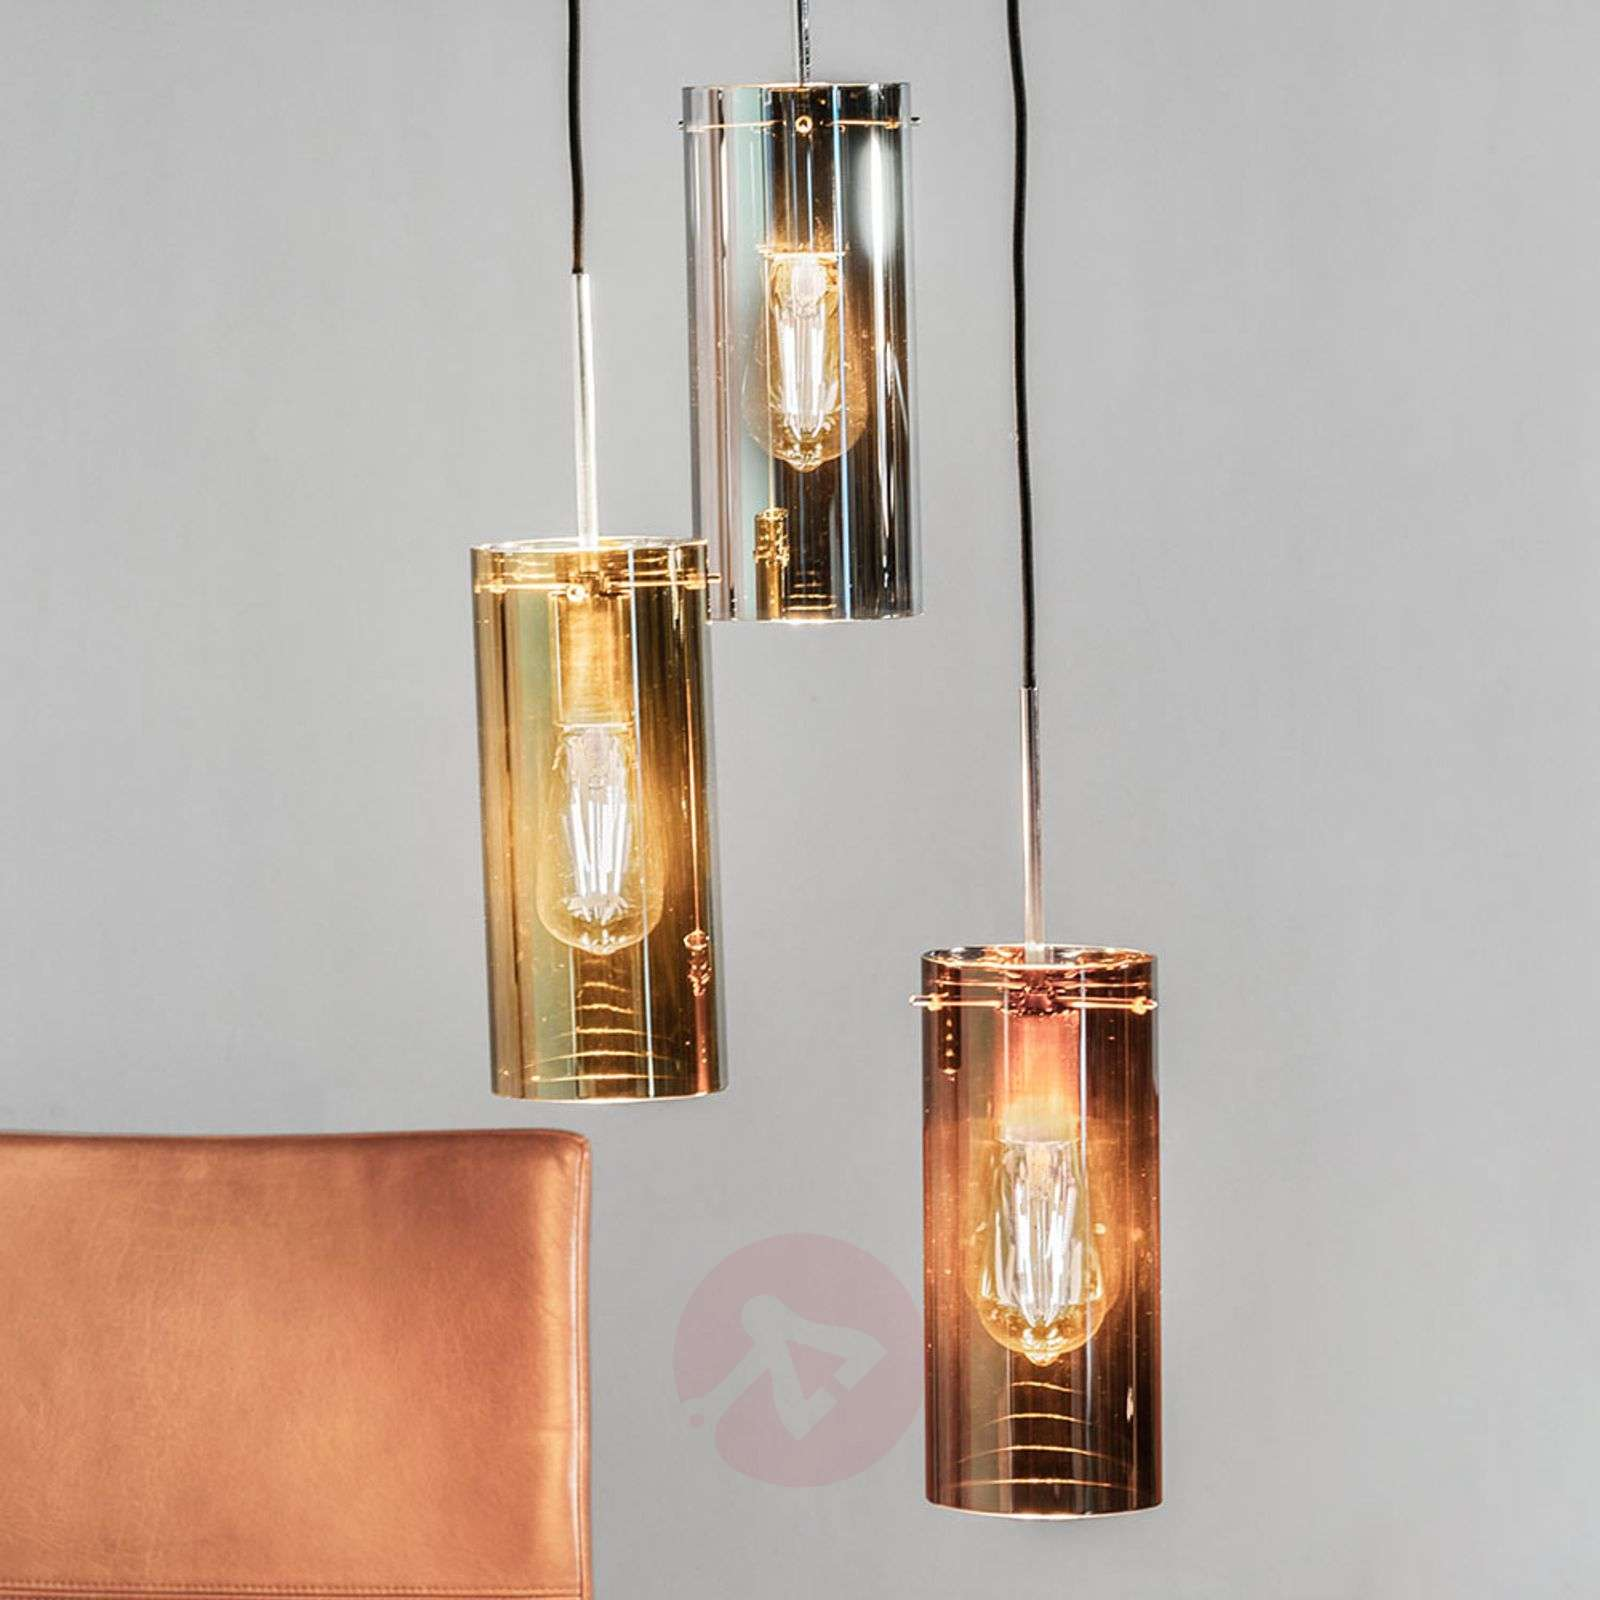 Storm 3-bulb pendant lamp in mix of colours-6505576-02